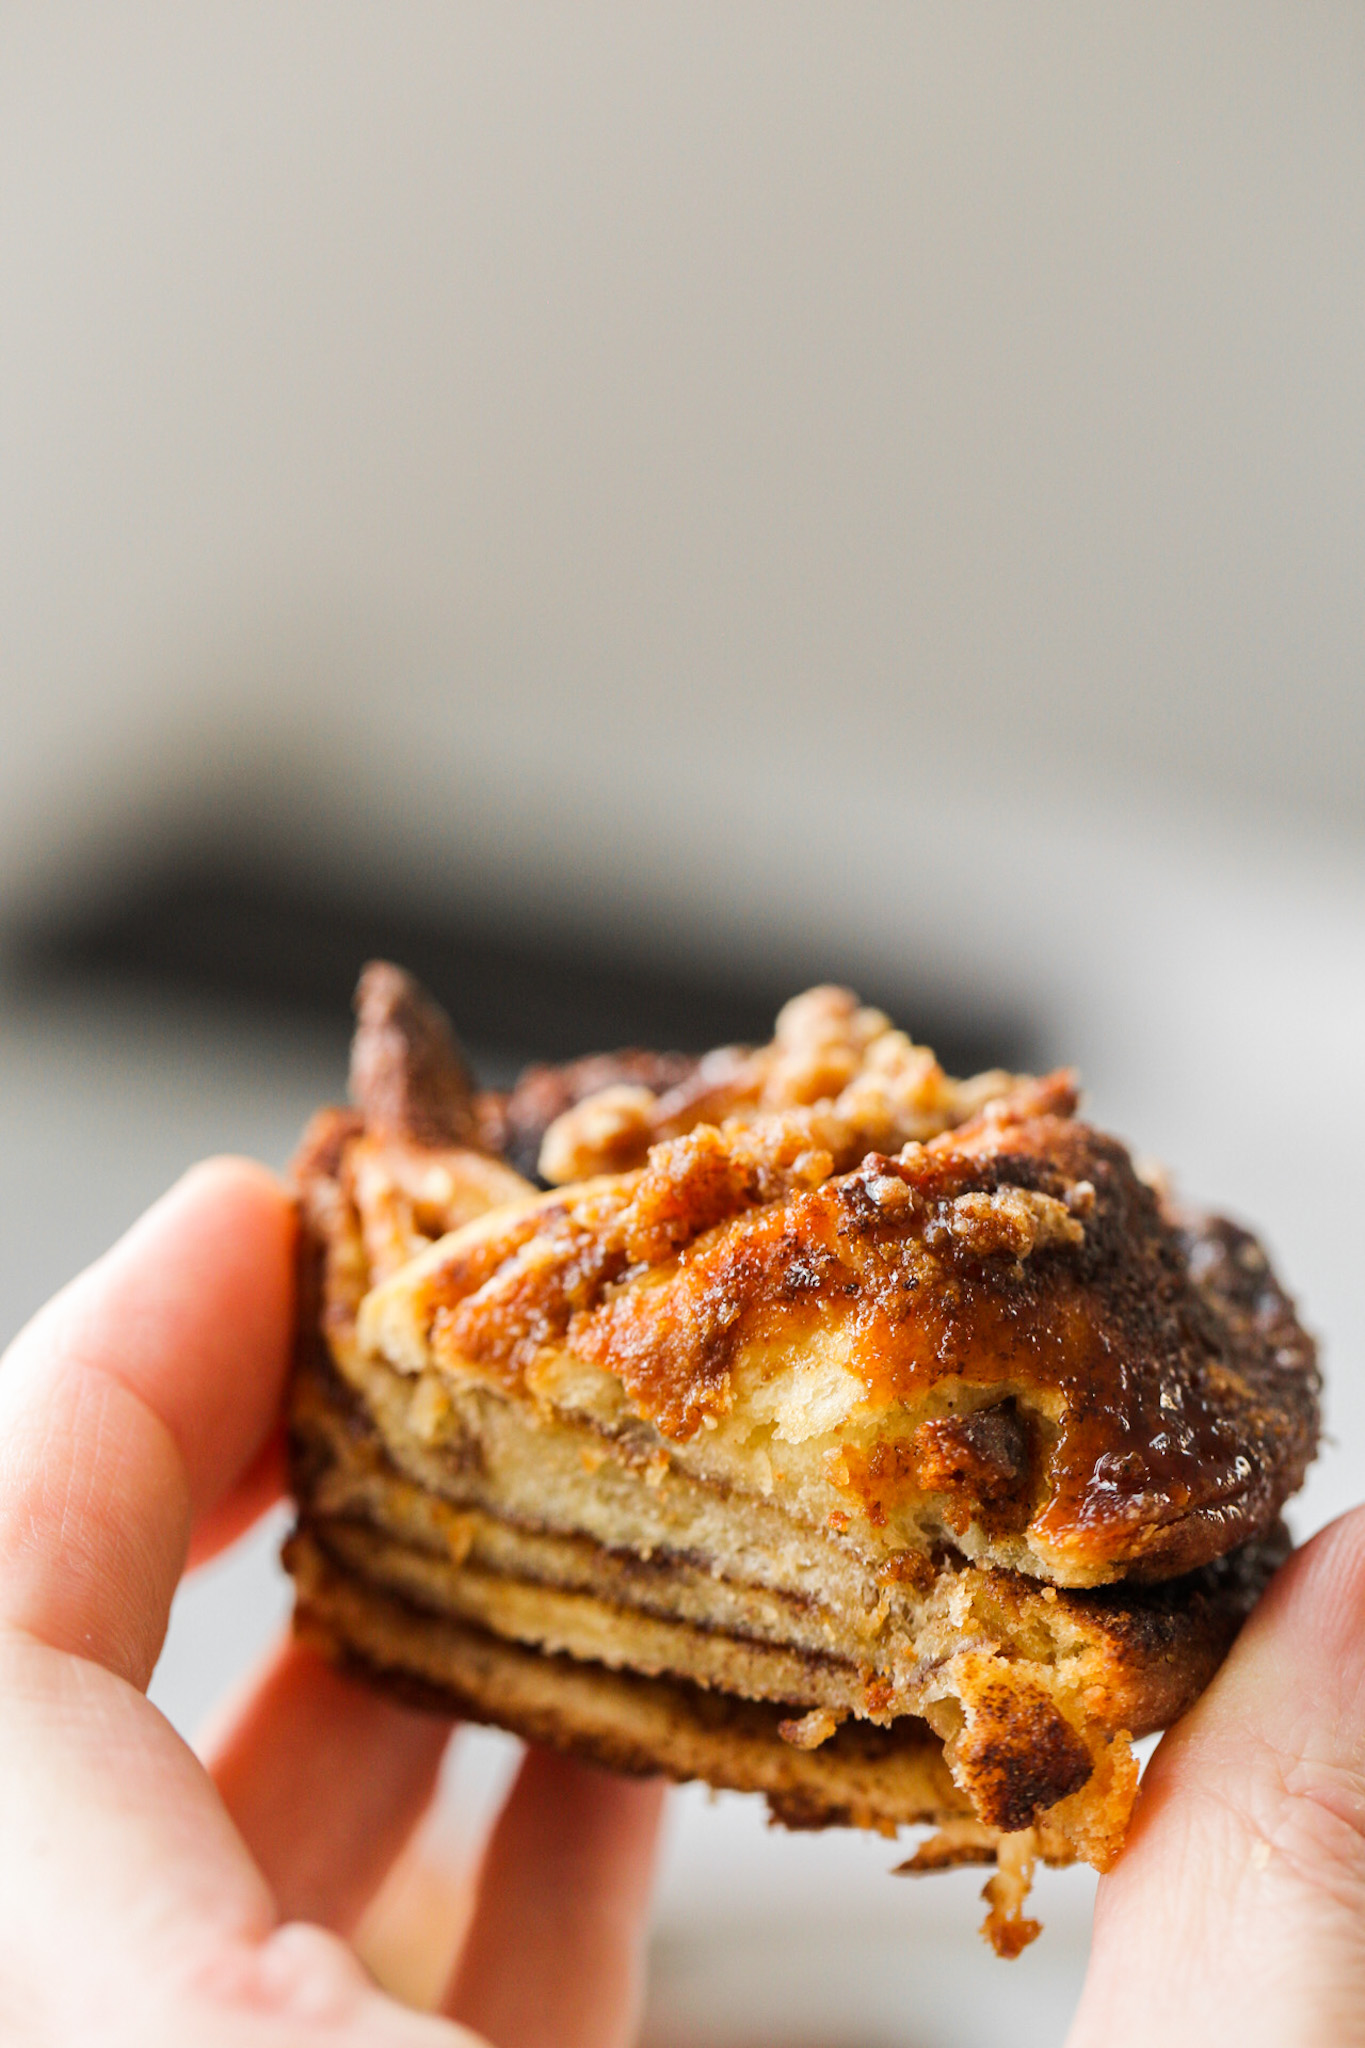 holding a mini babka sliced